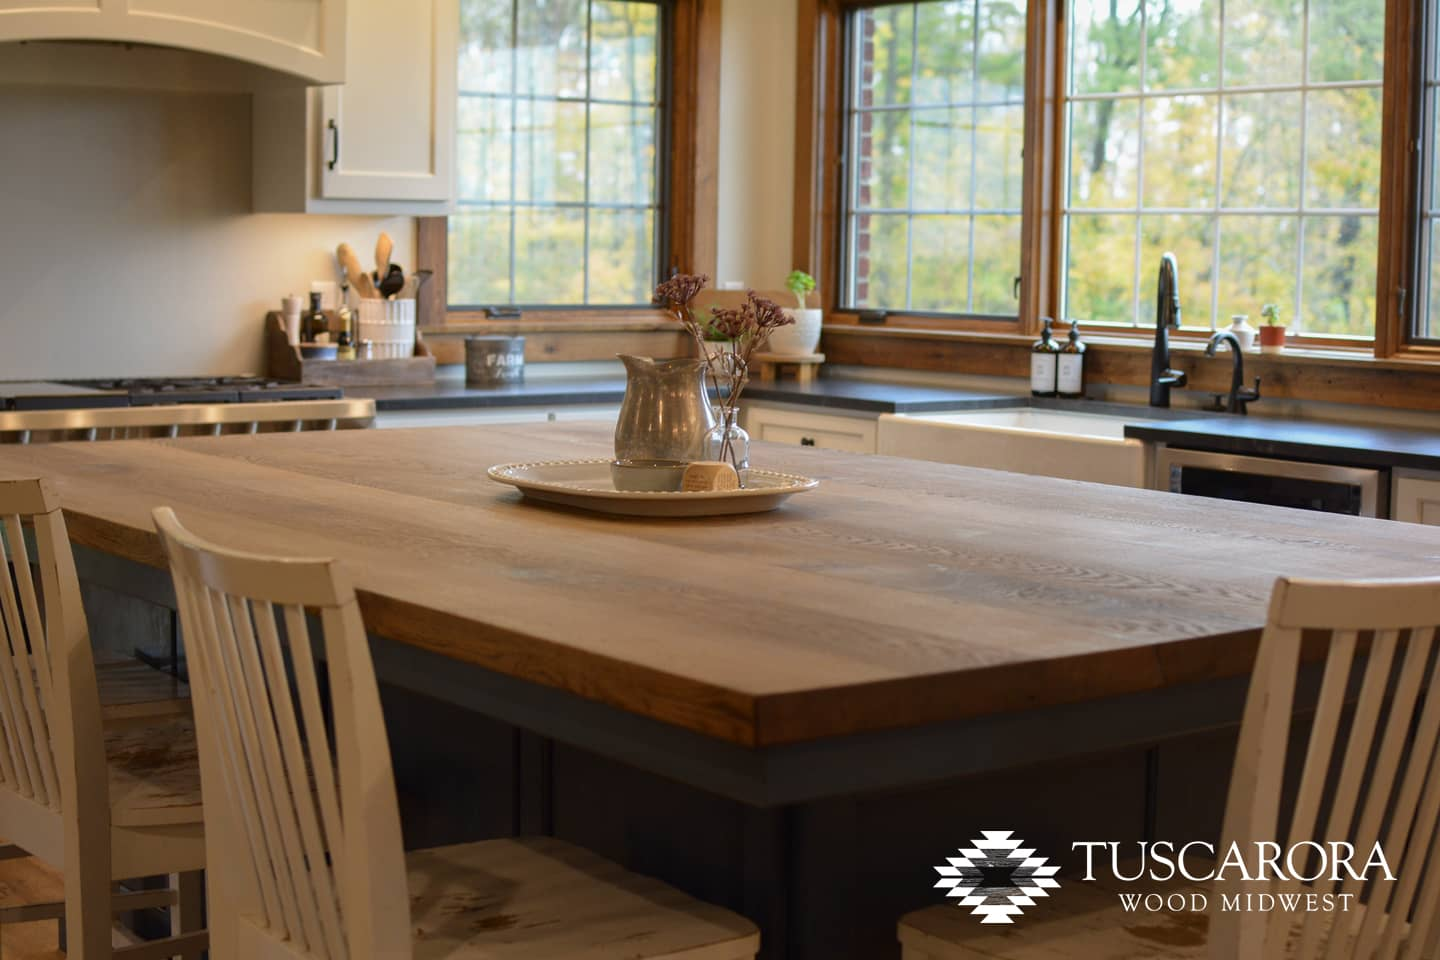 Tuscarora White Oak Countertop